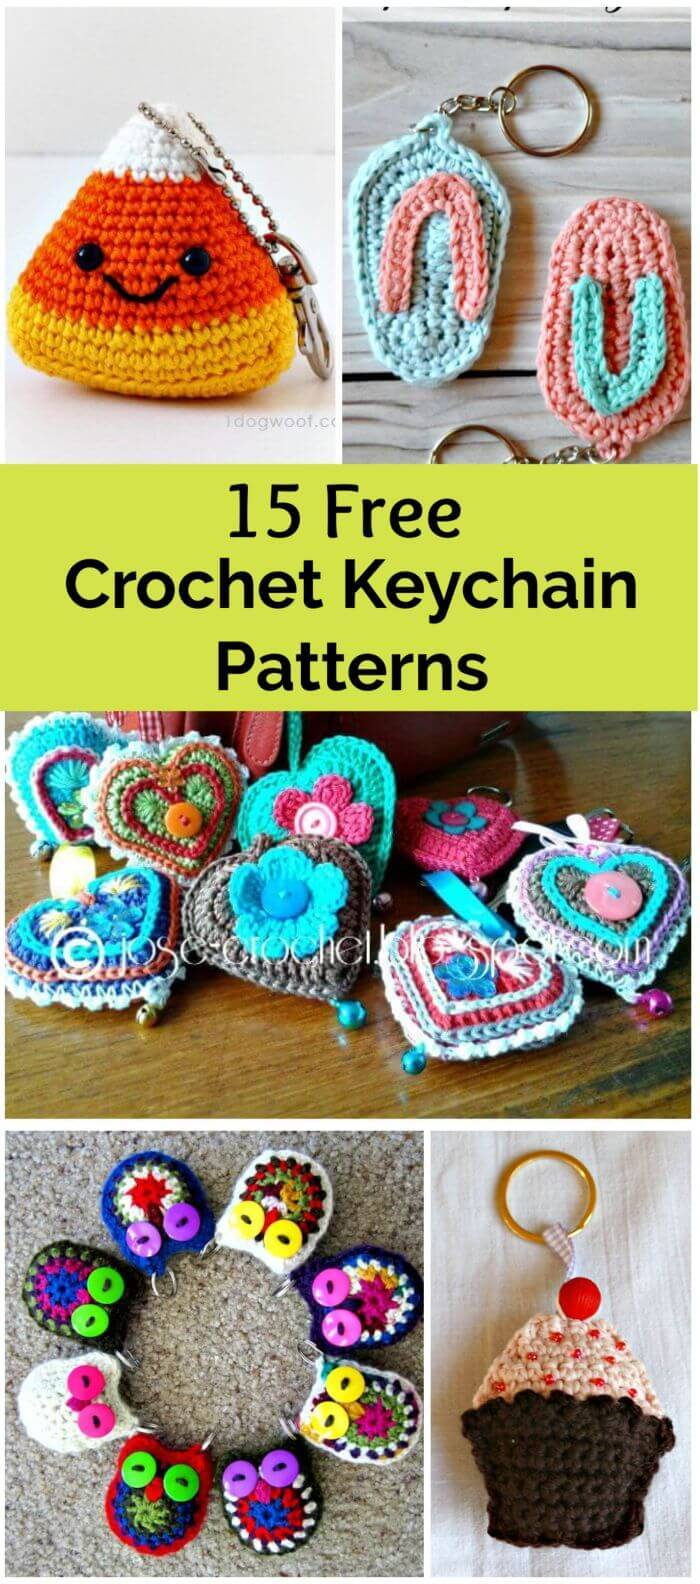 Crochet Keychain – 15 Free Crochet Patterns | Crochet mushroom ... | 1584x700